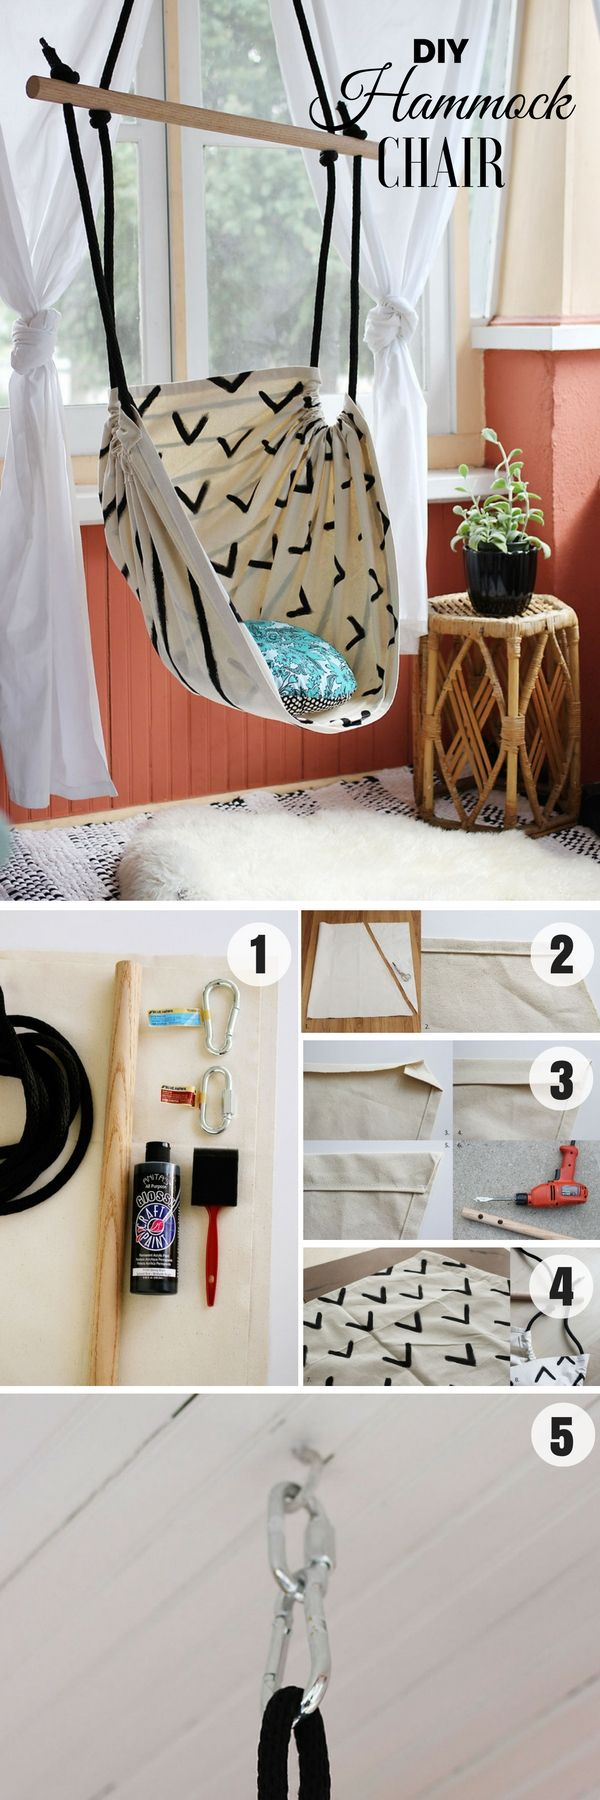 Diy Decorating best 25+ easy diy room decor ideas only on pinterest | diy, diy